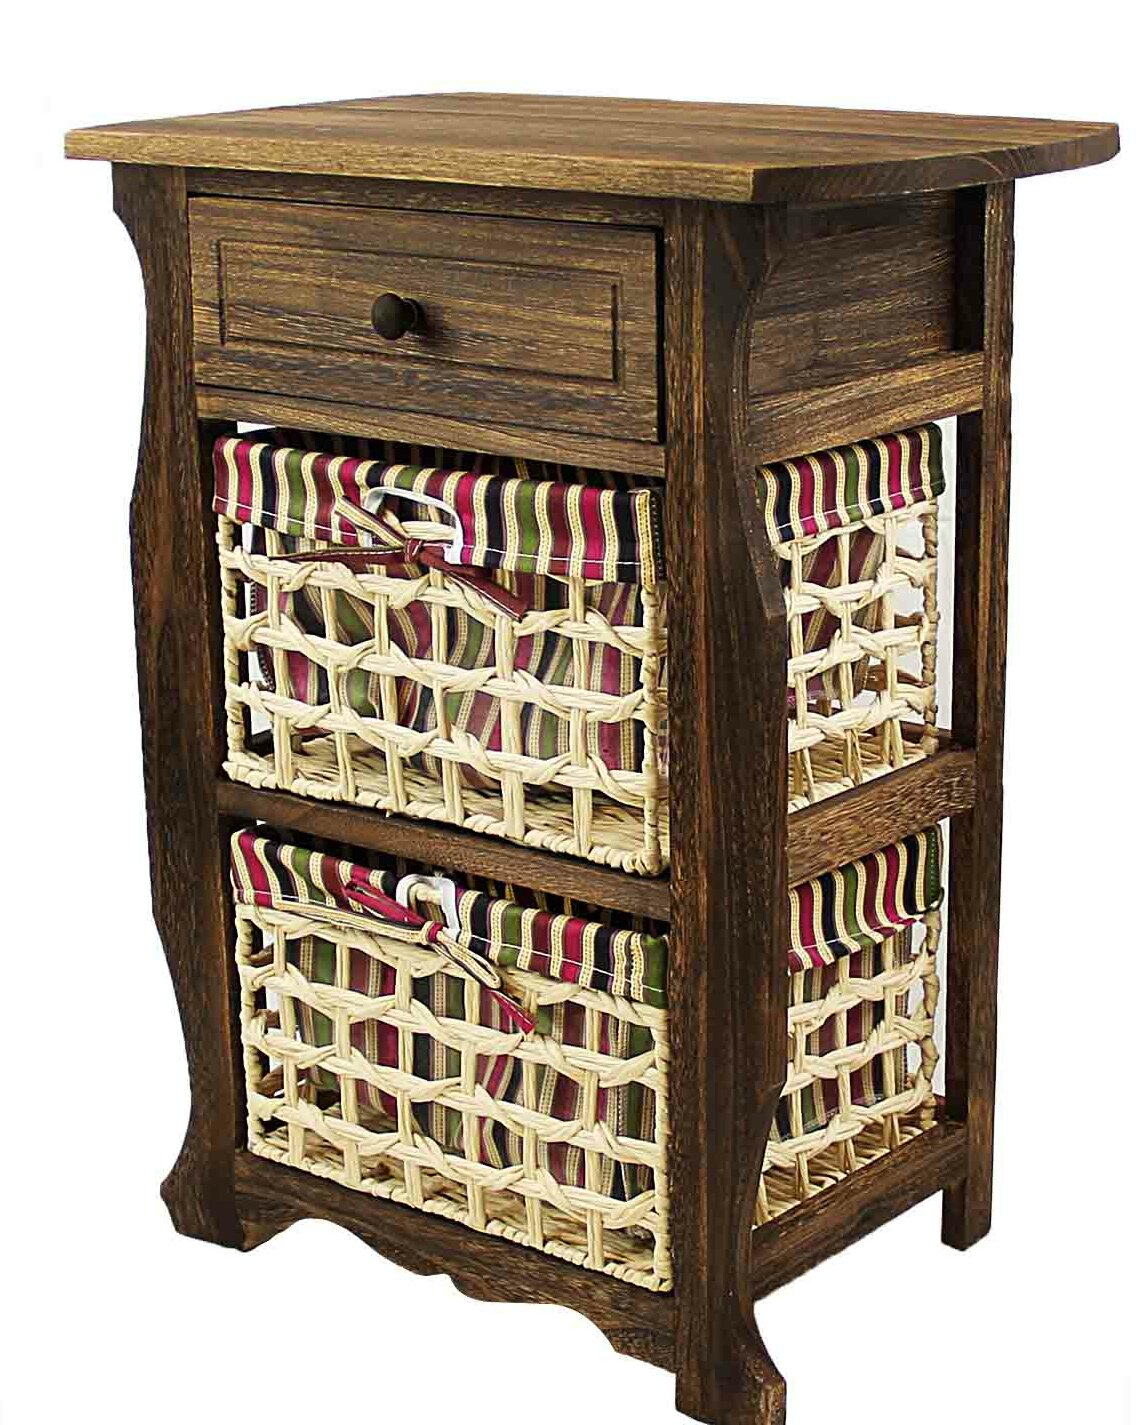 Details About Millwood Pines Long Ashton Wood Storage 1 Drawer Nightstand